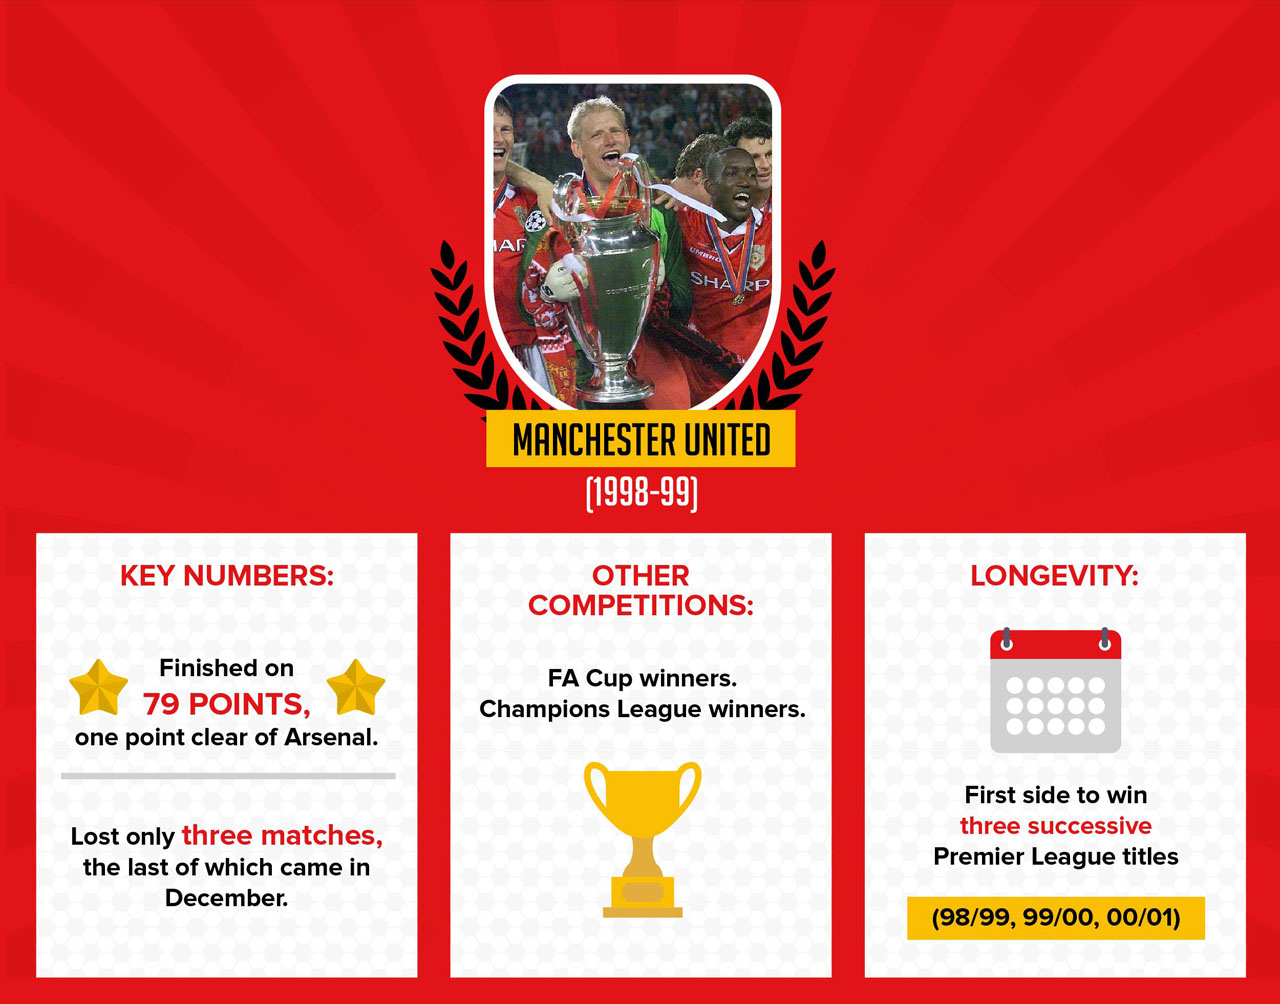 United's treble winning season. Would the signing of a player like Neymar bring back the glory days to Old Trafford?